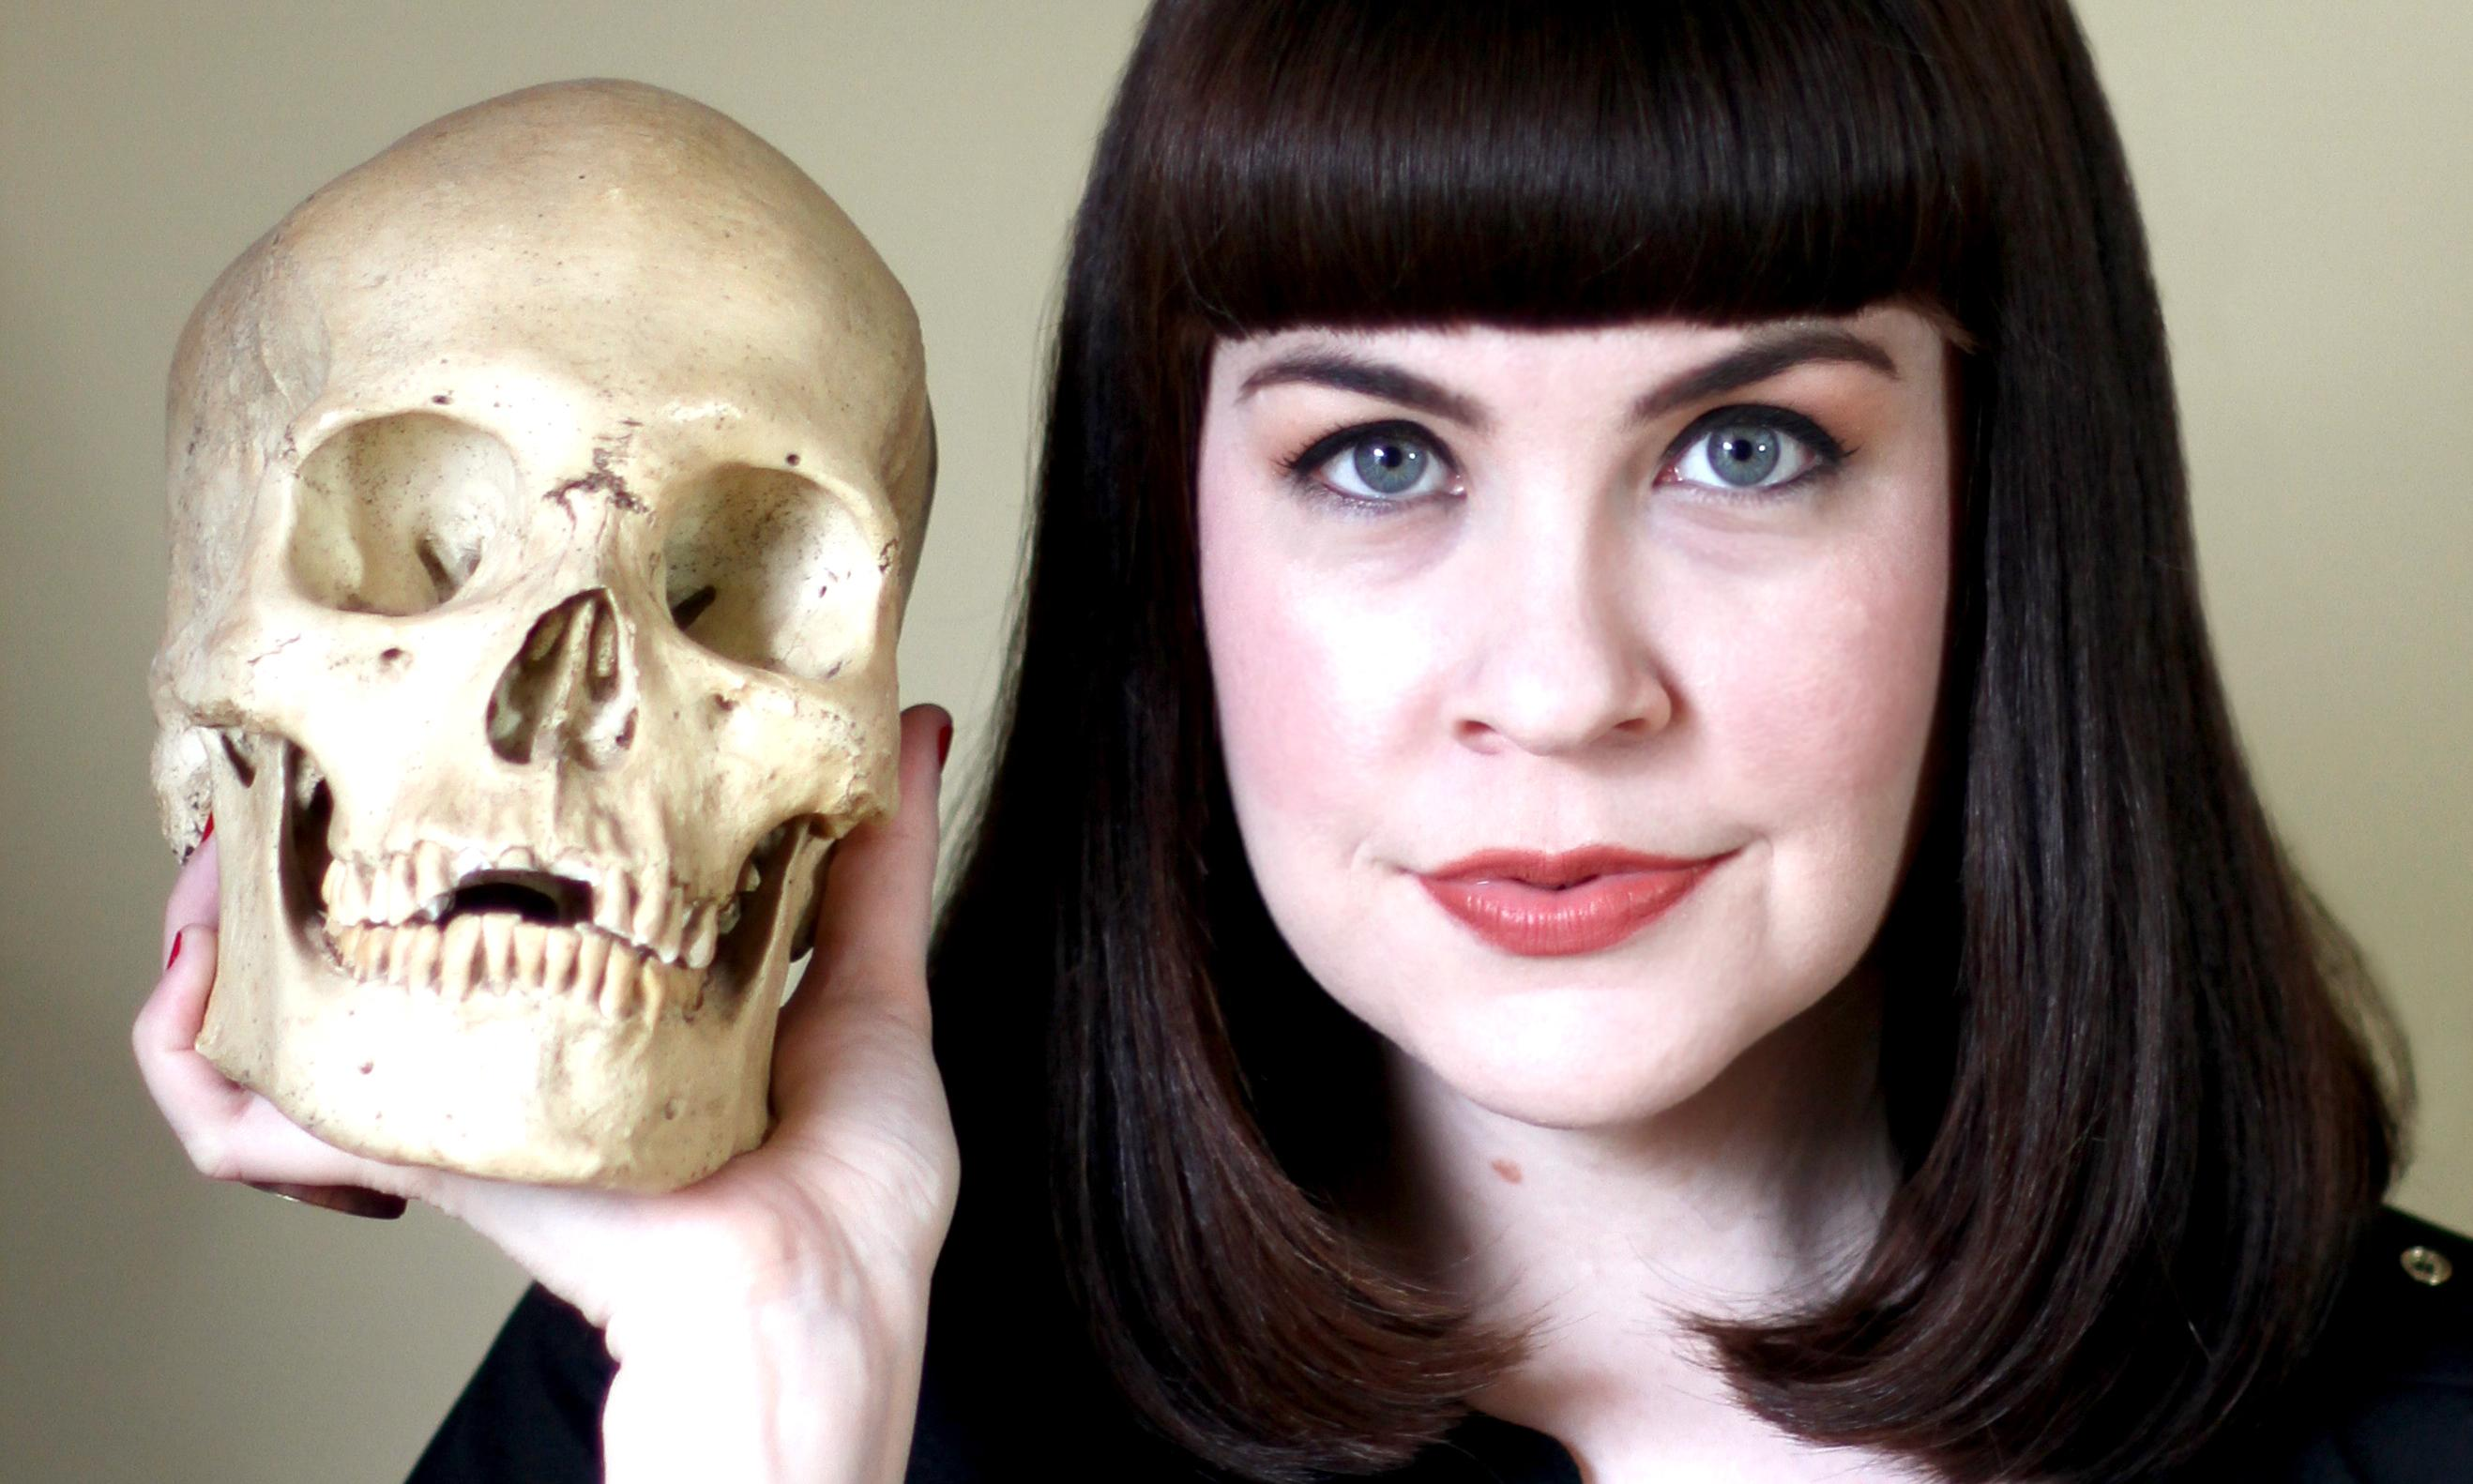 Will my cat eat my eyeballs? How Caitlin Doughty teaches kids about death